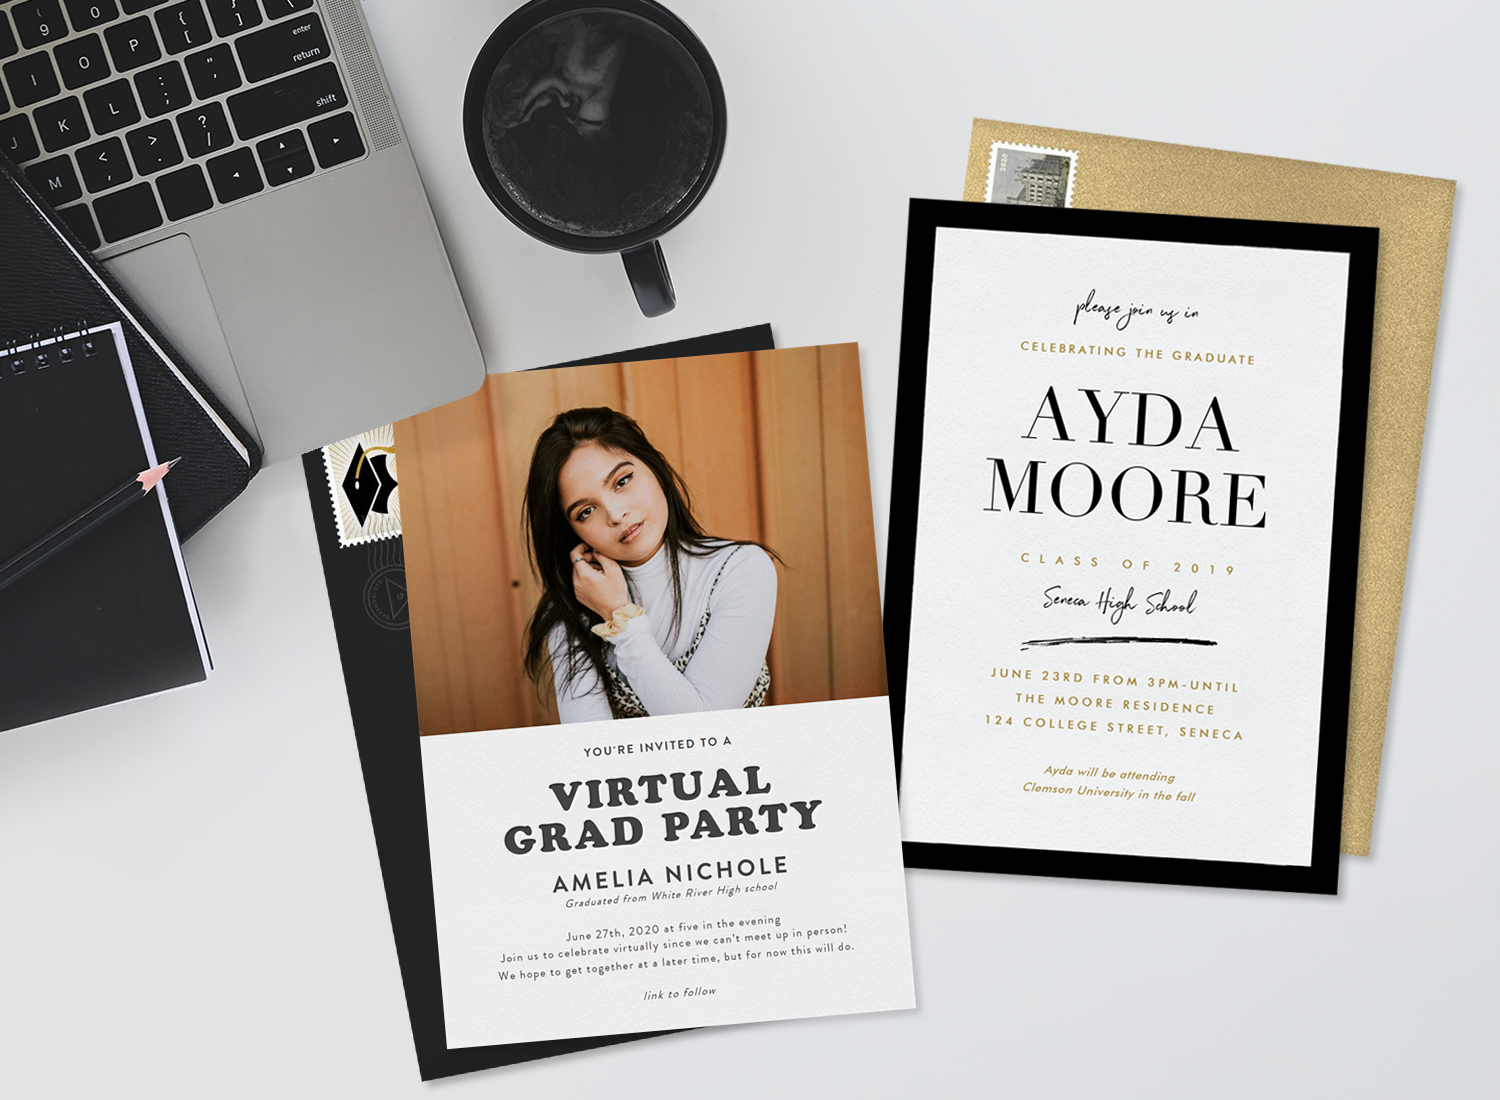 Graduation invitations: Pretty girl in an invitation